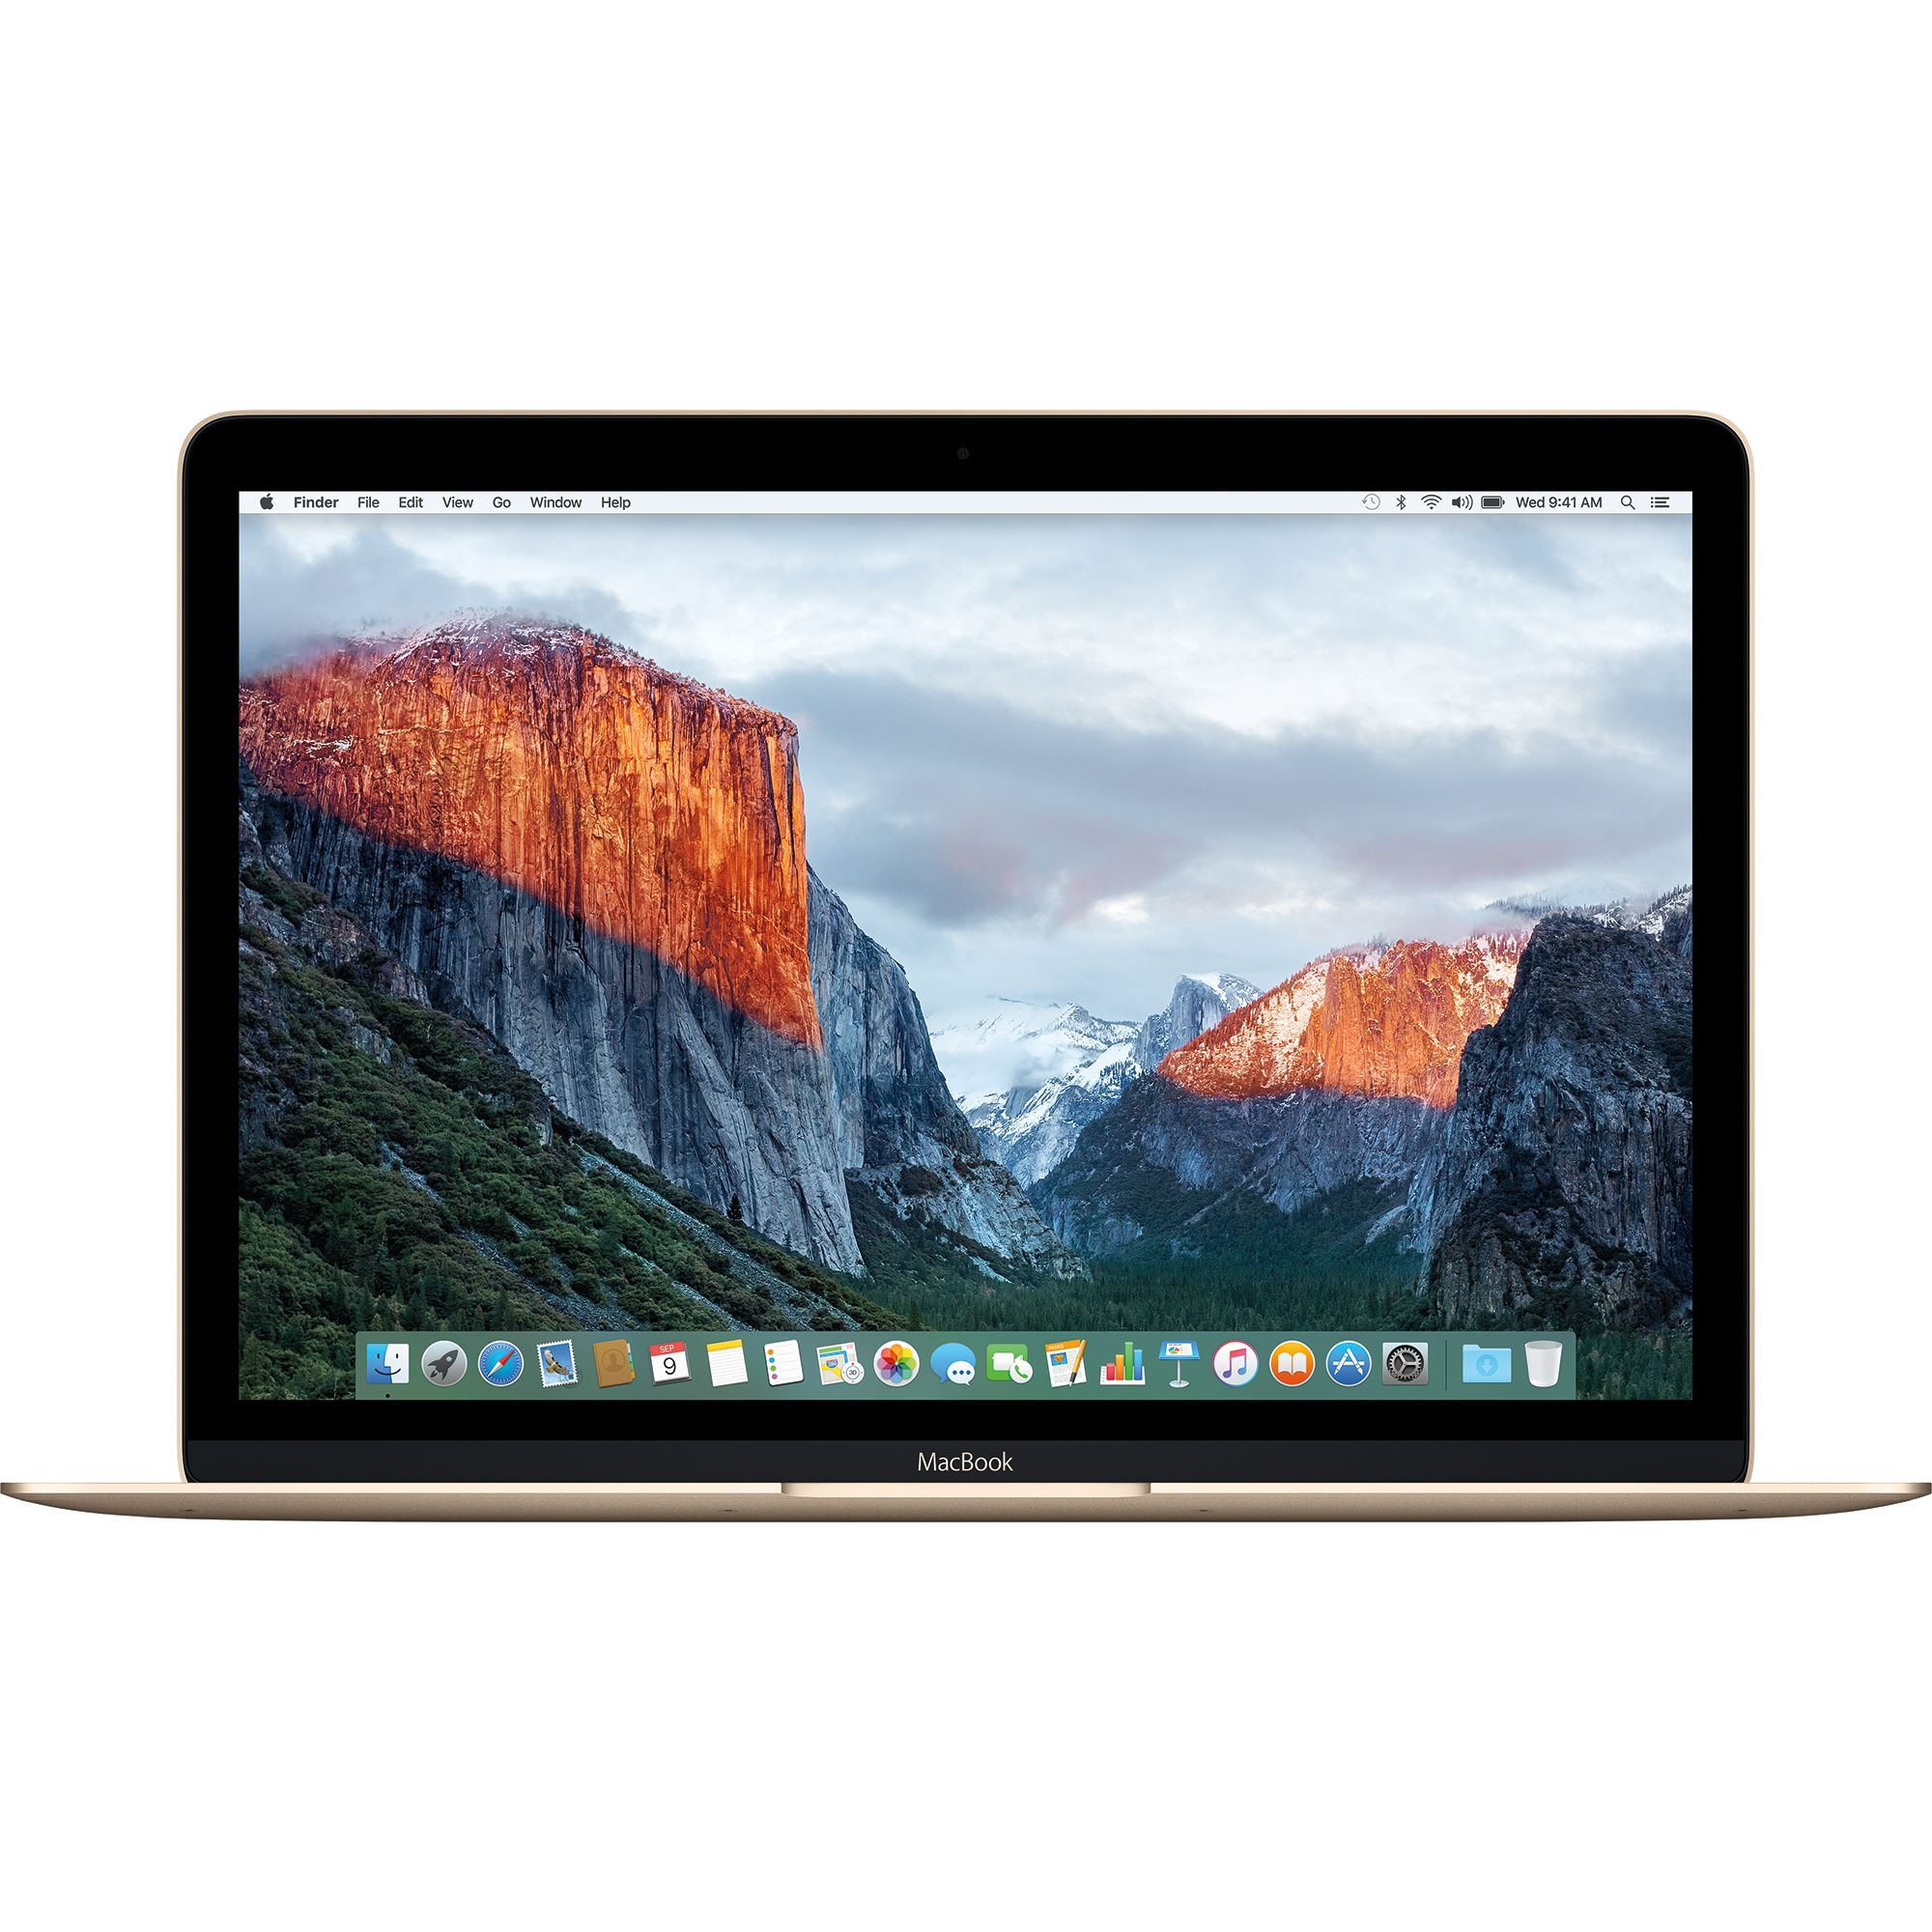 Notebook Apple MacBook 12 Retina Intel Core i5 1.3 GHz RAM 8GB SSD 512GB Tastatura INT Gold